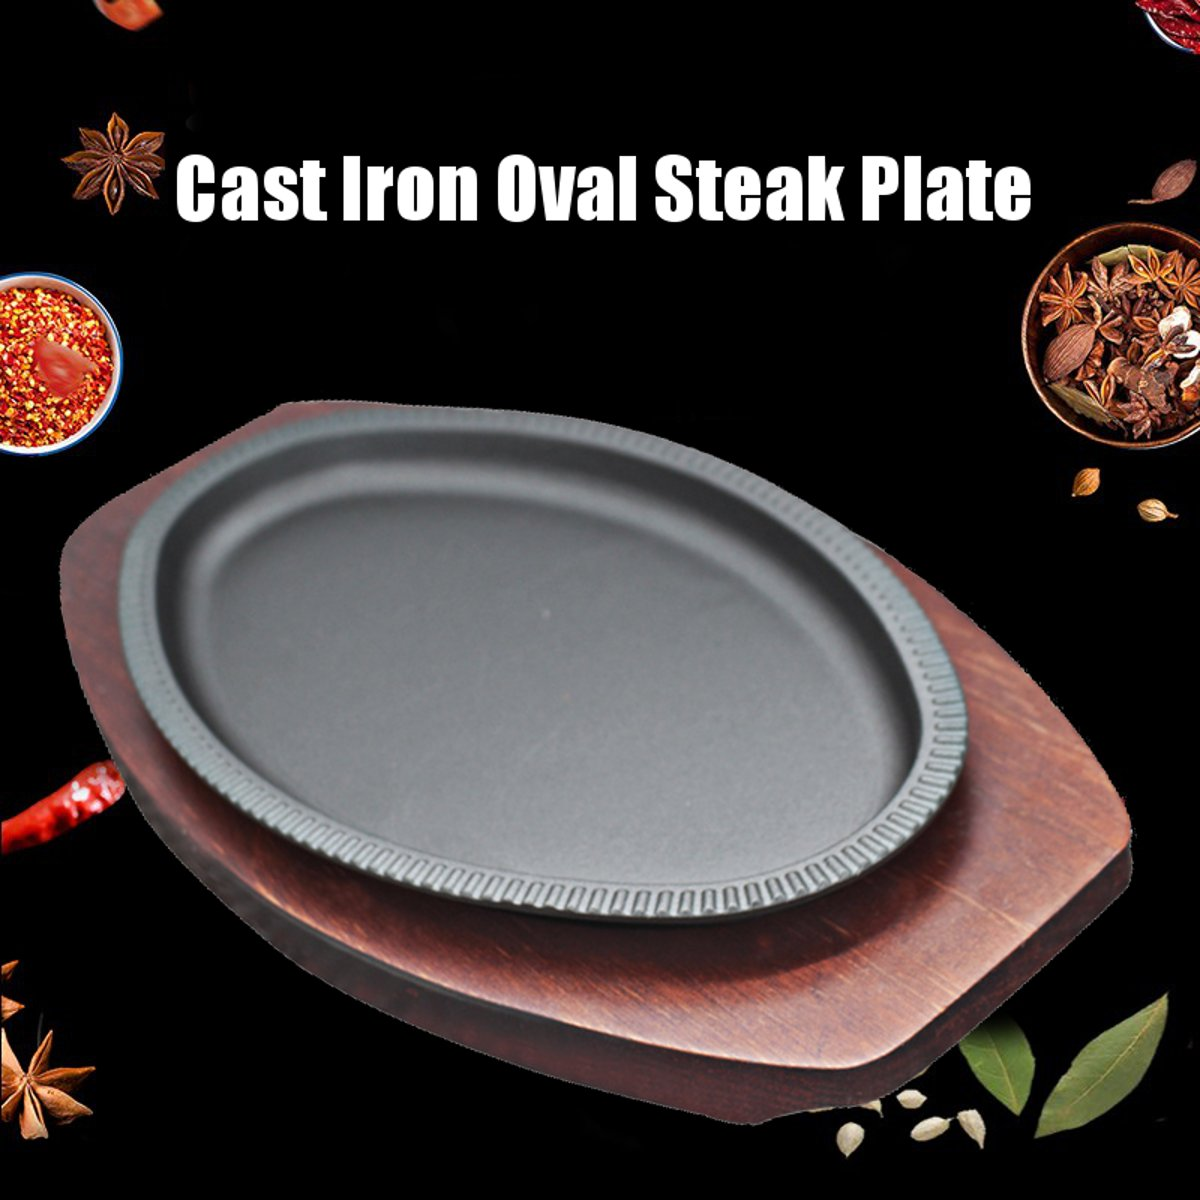 Oval Steak Plate Cast Iron Steak Sizzling Platter Meat BBQ Grill Pan Wooden Tray Base Kitchen Cooking Tools Cookware 22x13cm